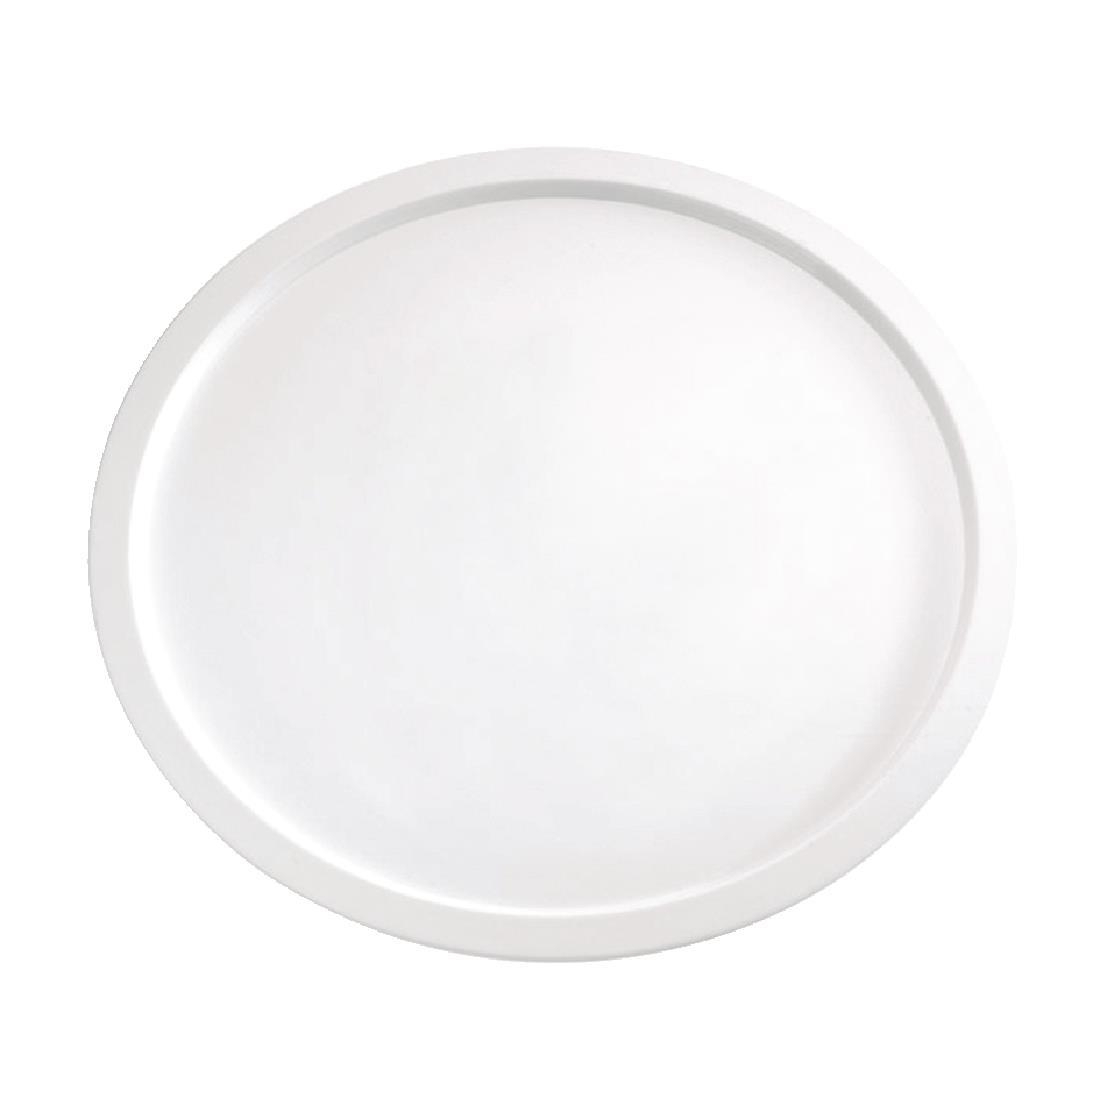 GF155 - APS Pure Melamine Serving Plate - Each - GF155